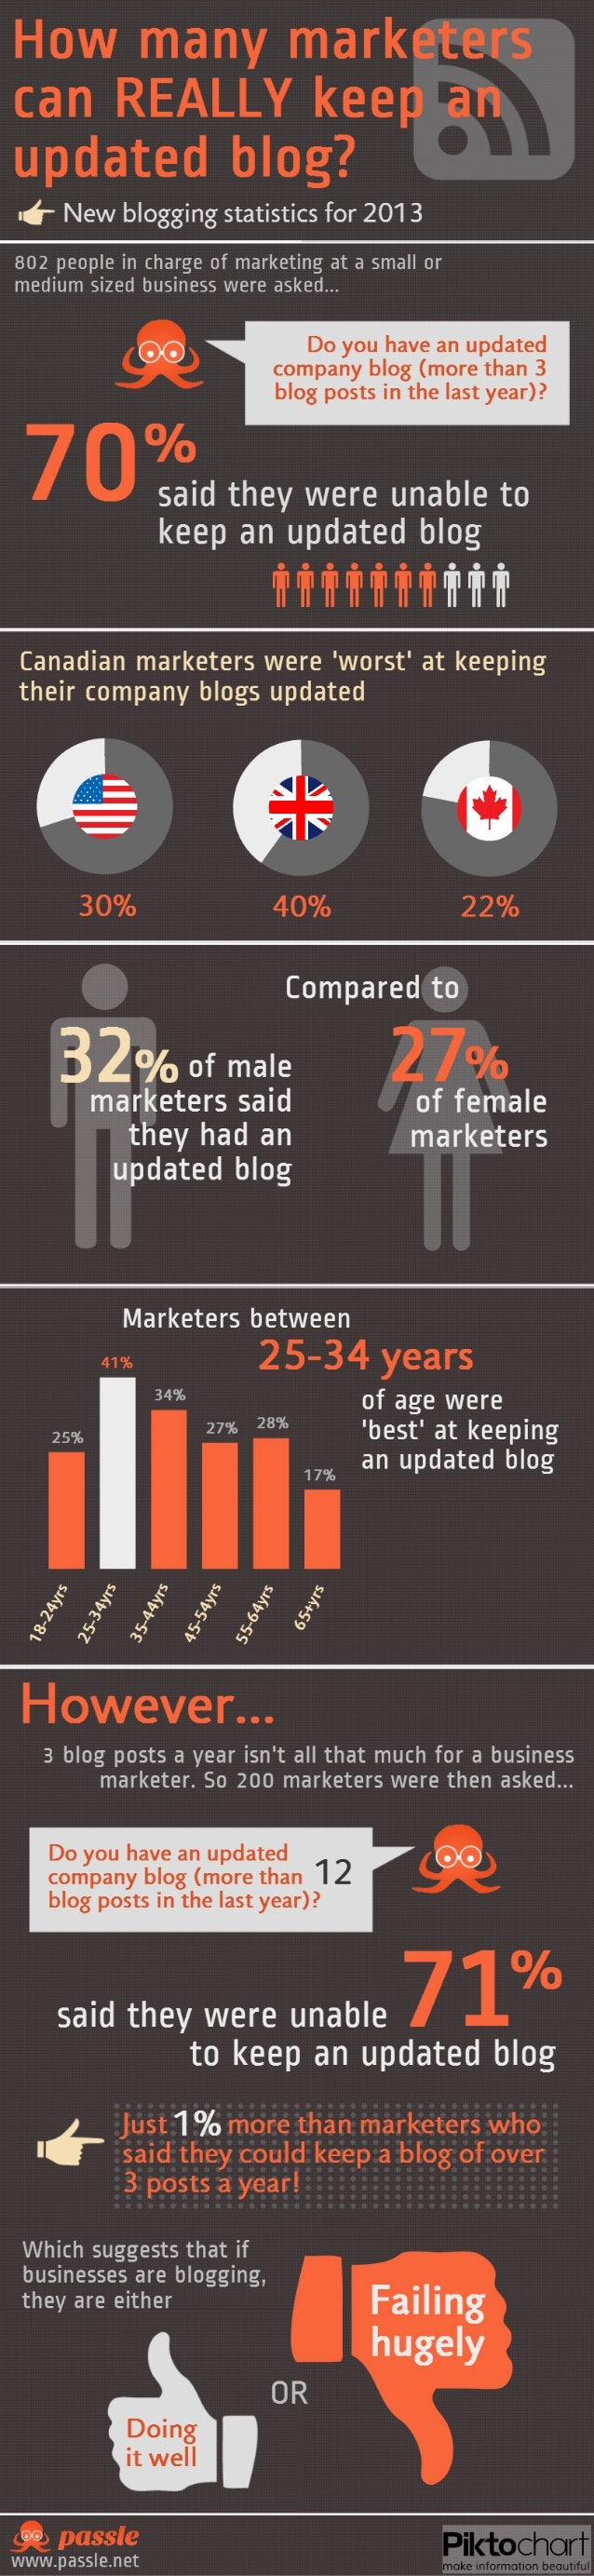 How many marketers really have an updated blog?